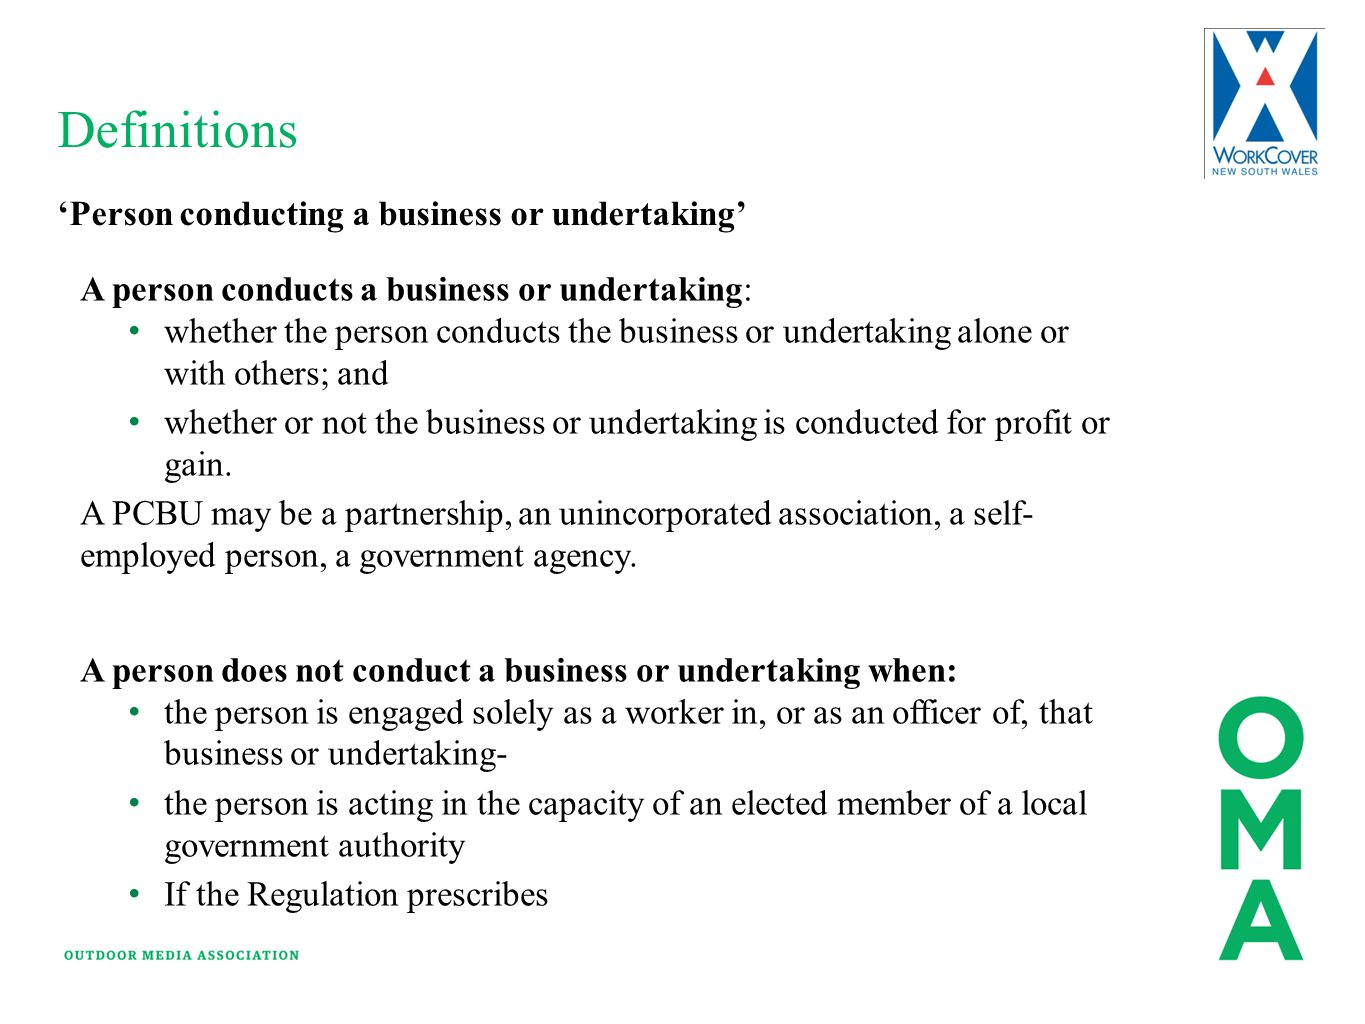 Definitions A person conducts a business or undertaking: